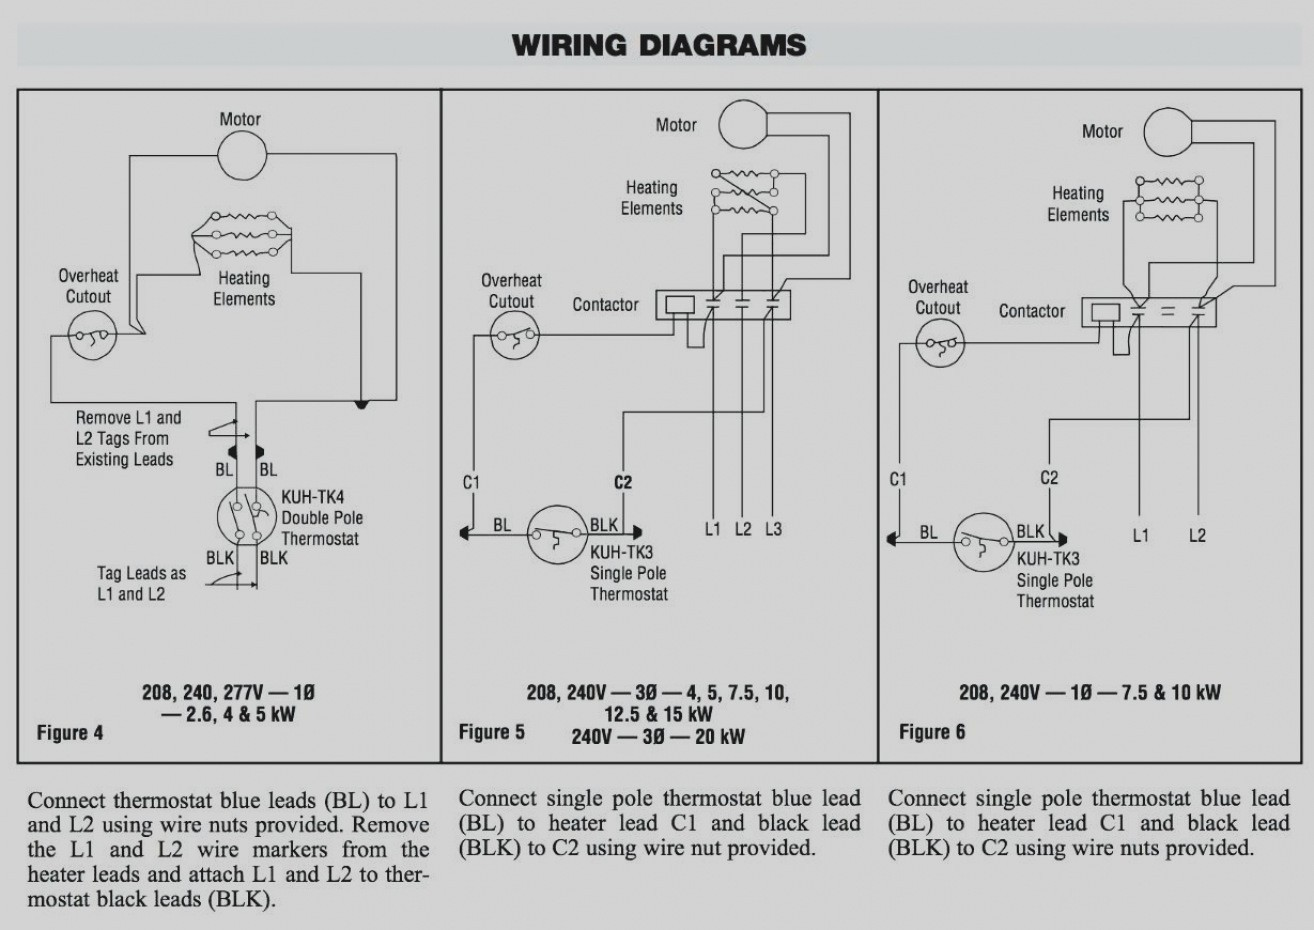 Electric baseboard heater wiring diagram wiring diagram image unique baseboard heater wiring diagram thermostat multiple heaters just e asfbconference2016 Image collections